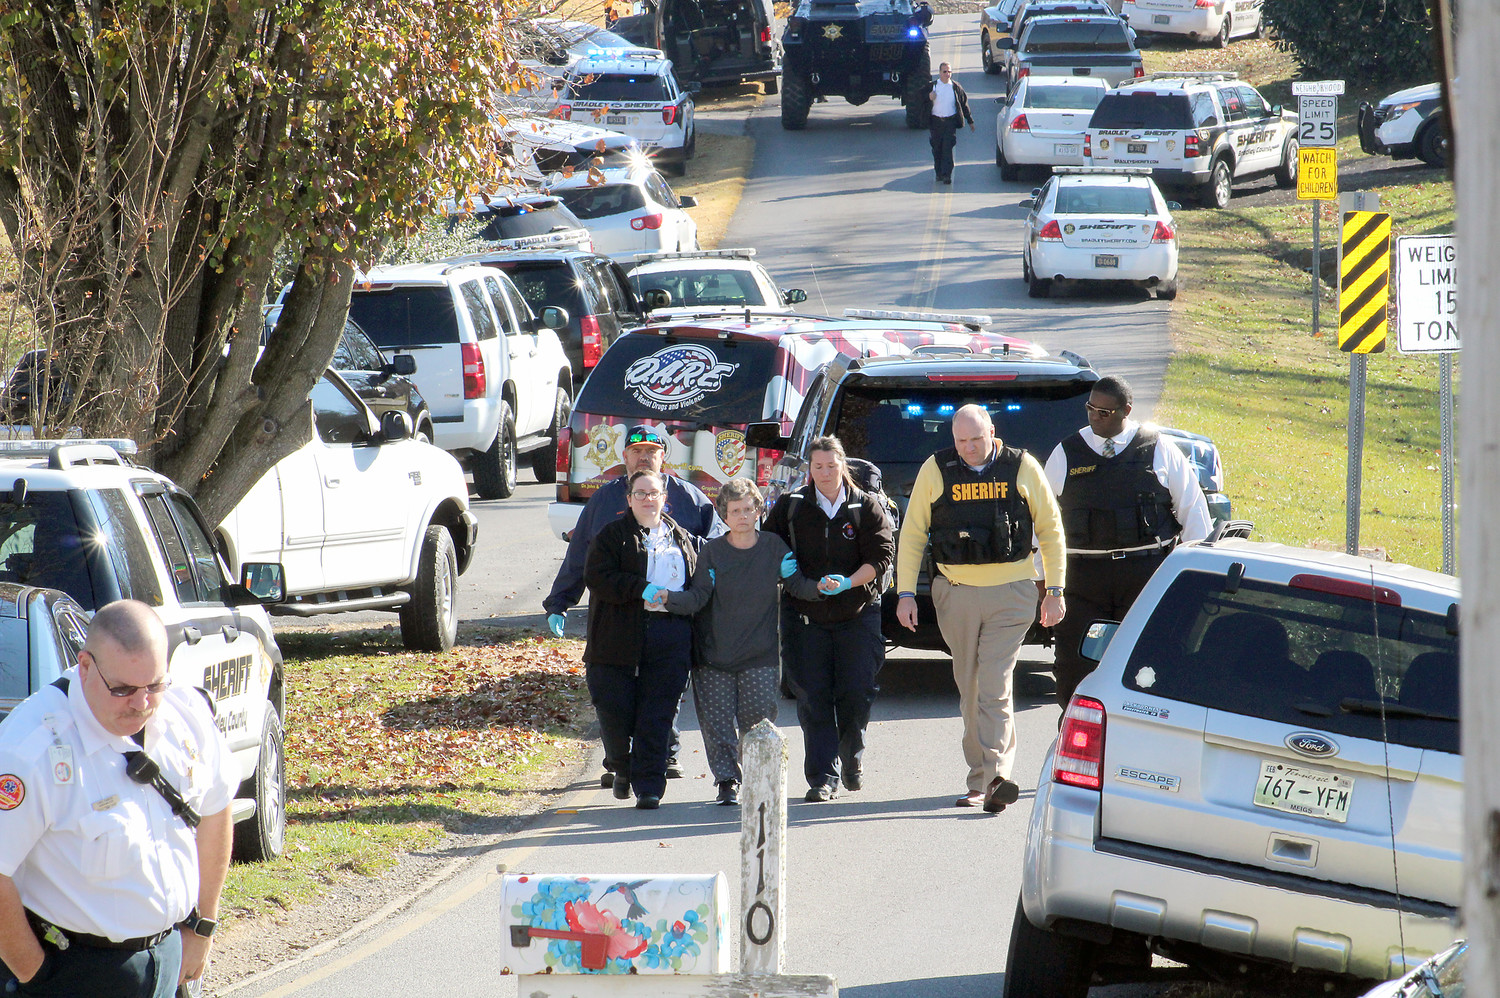 LAW ENFORCEMENT and emergency responders are seen escorting a Royal Oaks subdivision homeowner away from her residence after a hostage crisis on Tuesday. She escaped her home after it had been invaded by a couple she had reported to be in a suspicious vehicle in the neighborhood. The two were finally placed in custody after a six-hour standoff. Seen at right are Sheriff Eric Watson and BCSO Public Information Officer James Bradford.